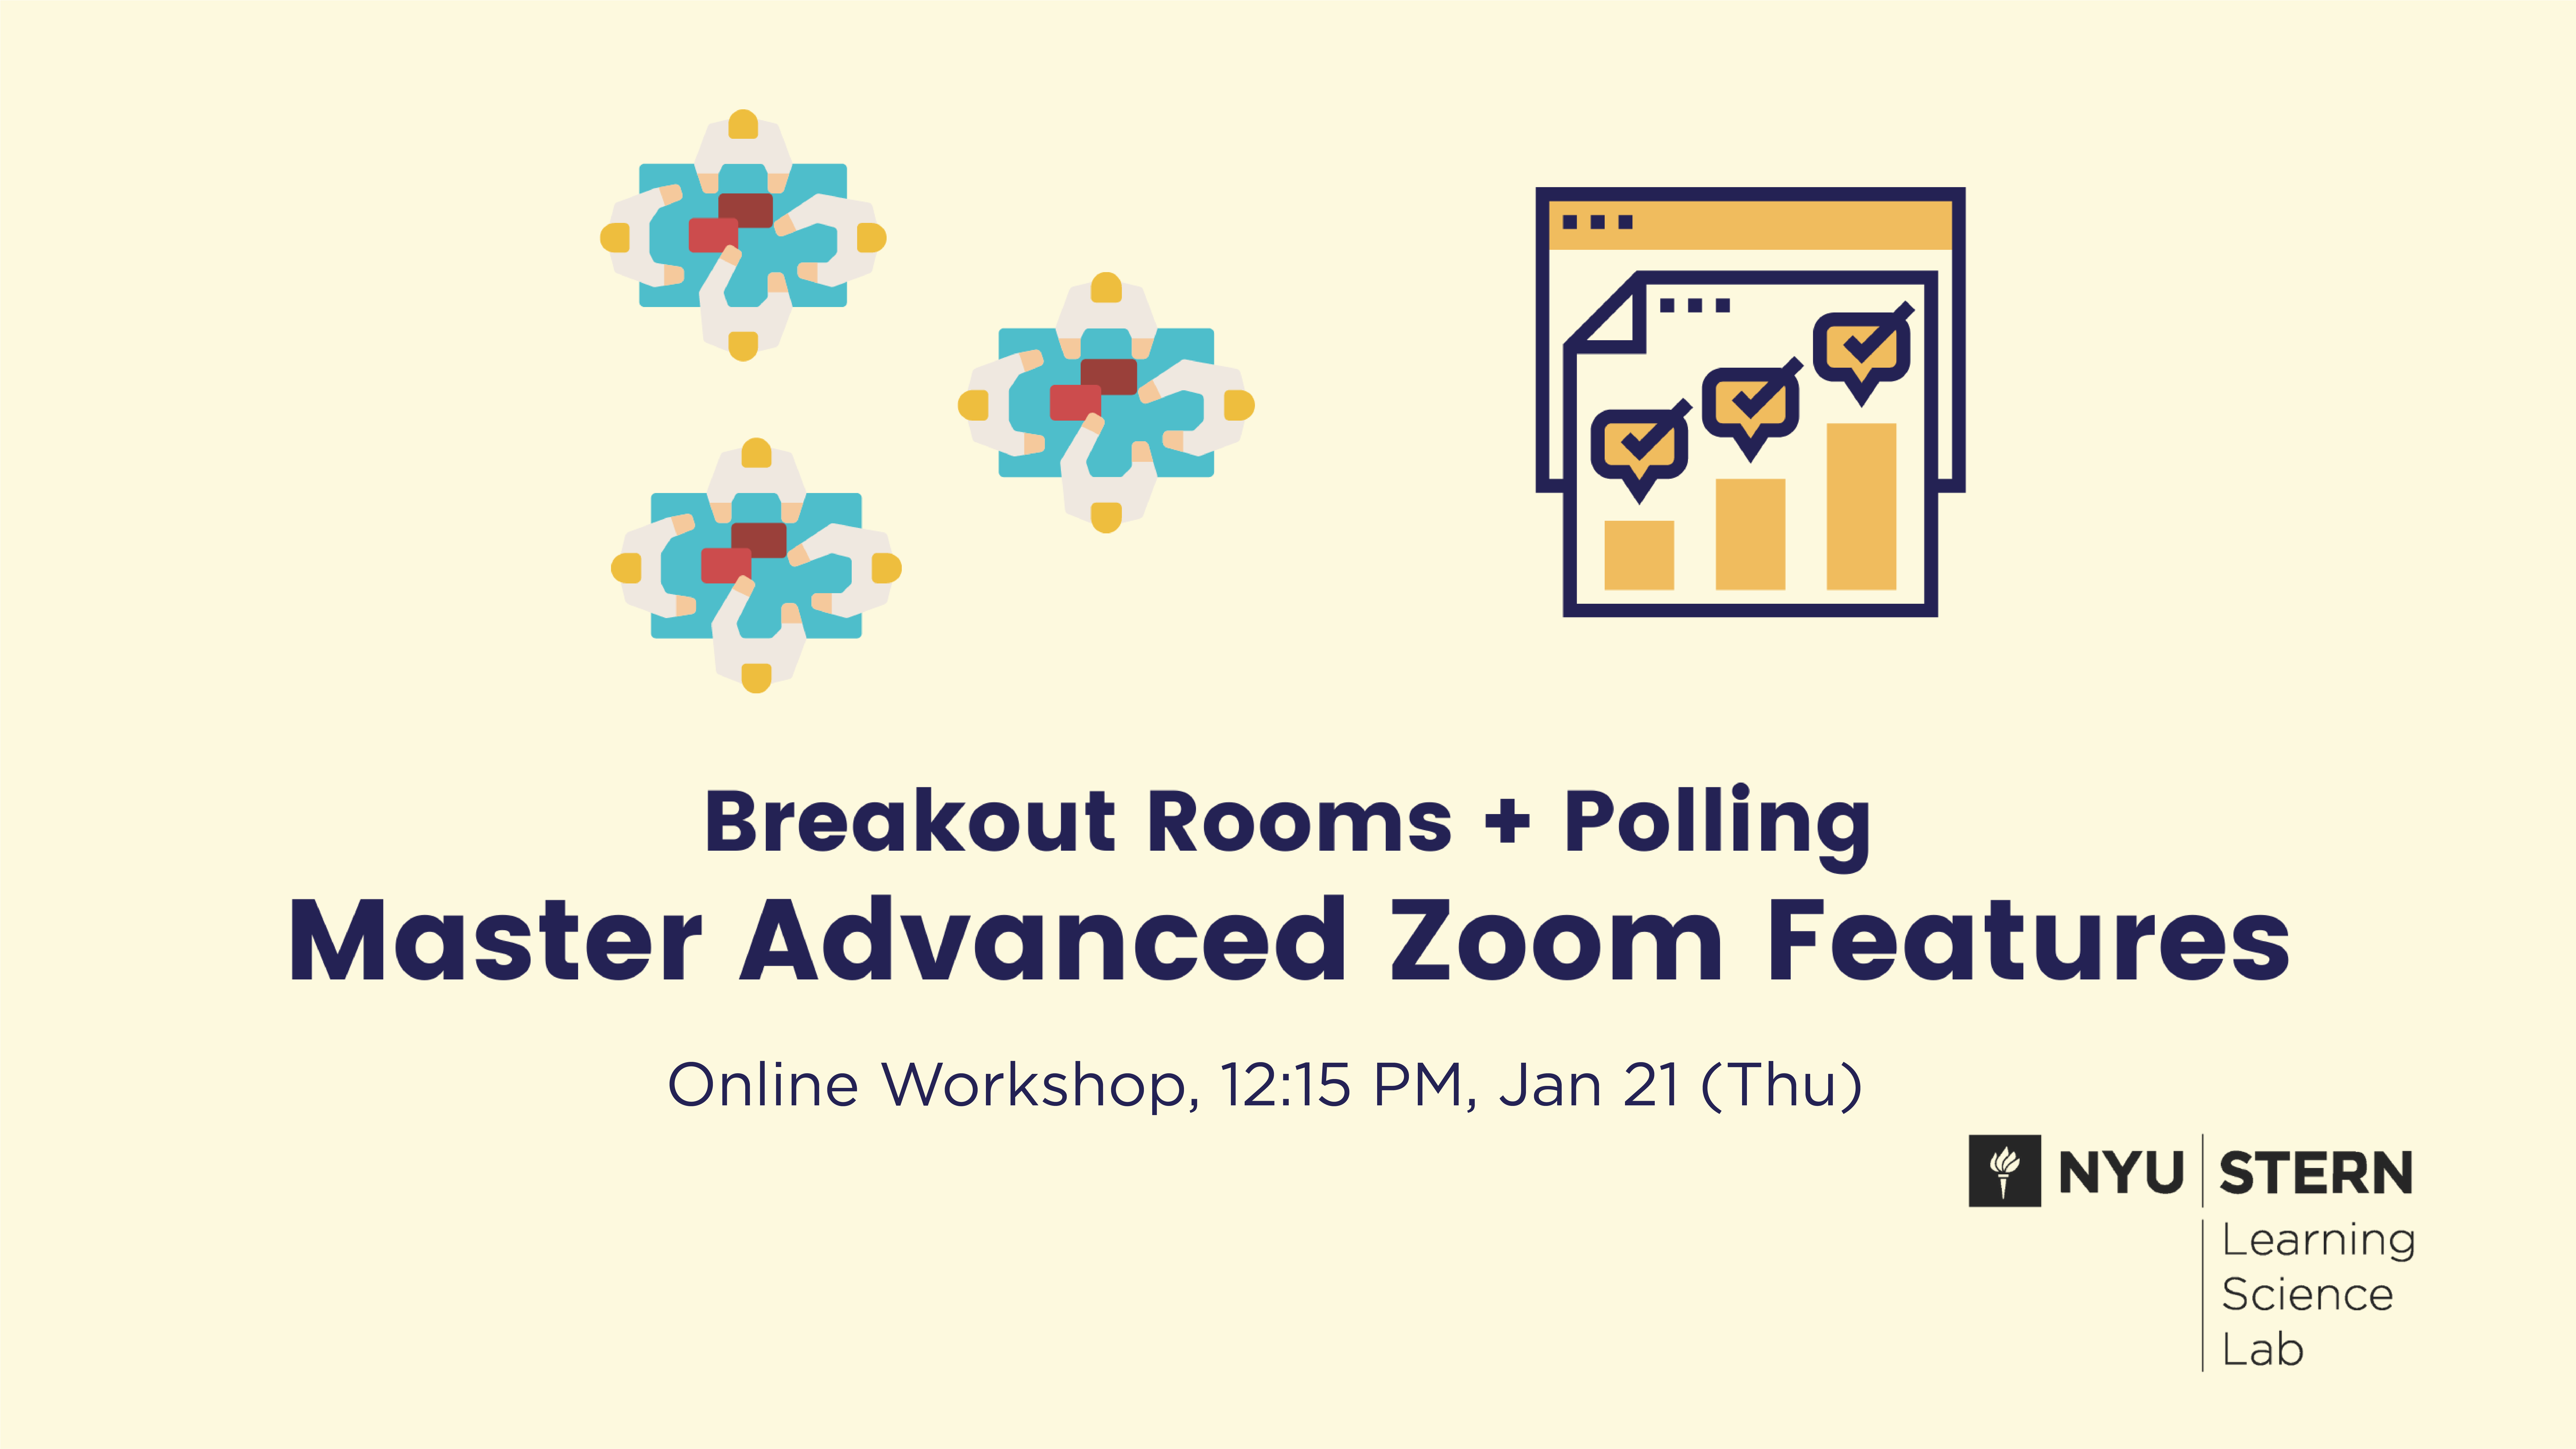 Breakout rooms and polling: Master advanced Zoom features. Online Workshop 12:15pm Jan 21 (Thu)